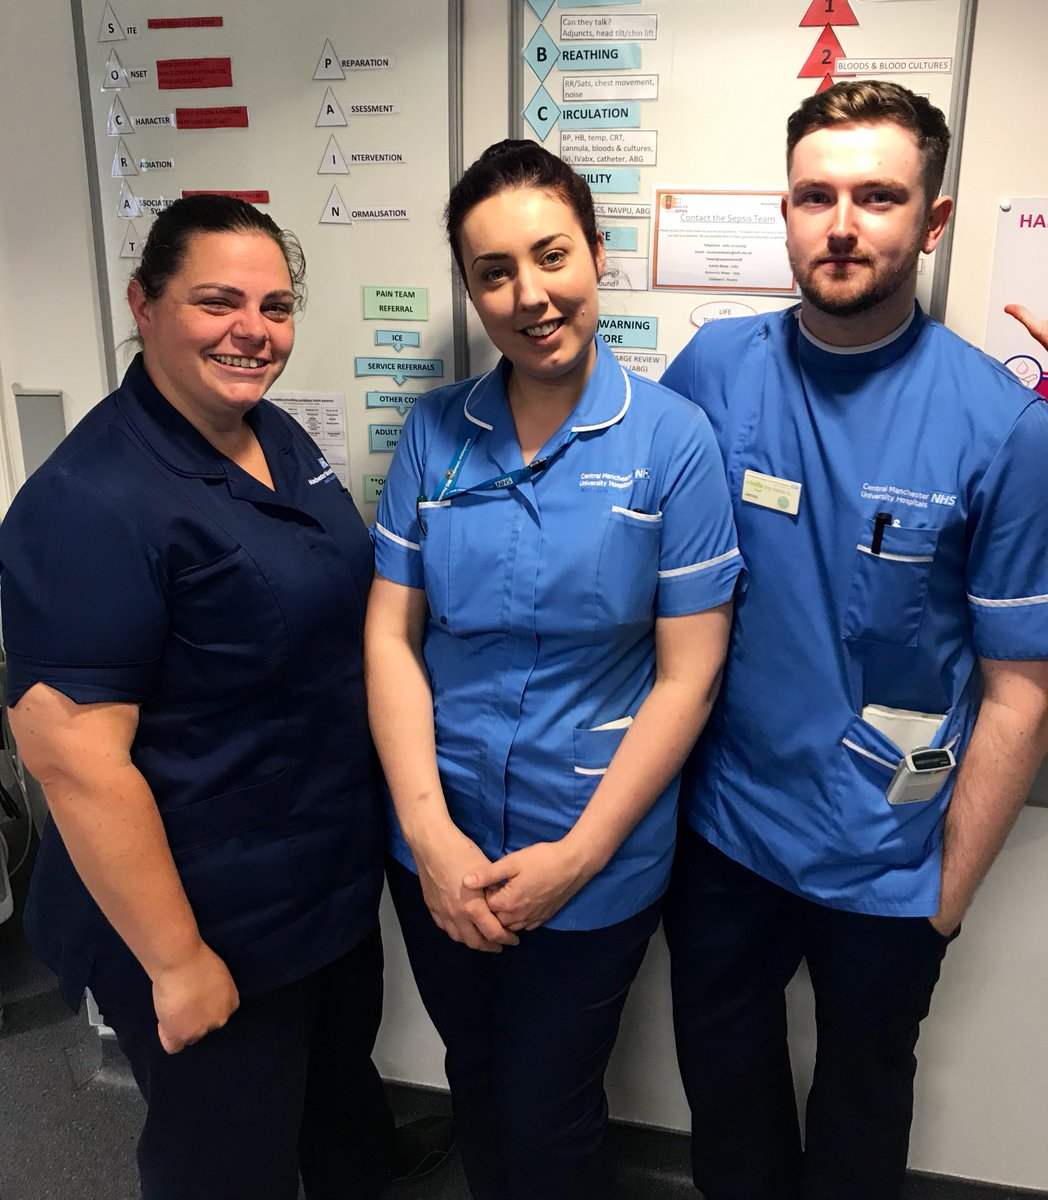 Kerry, Vikki and James do a sterling job looking after patients on @MFT_Ward11and12. Kerry is about to go on annual leave but she knows her wards are in good hands! #peopleofMRI #teamGIMS #teamwork